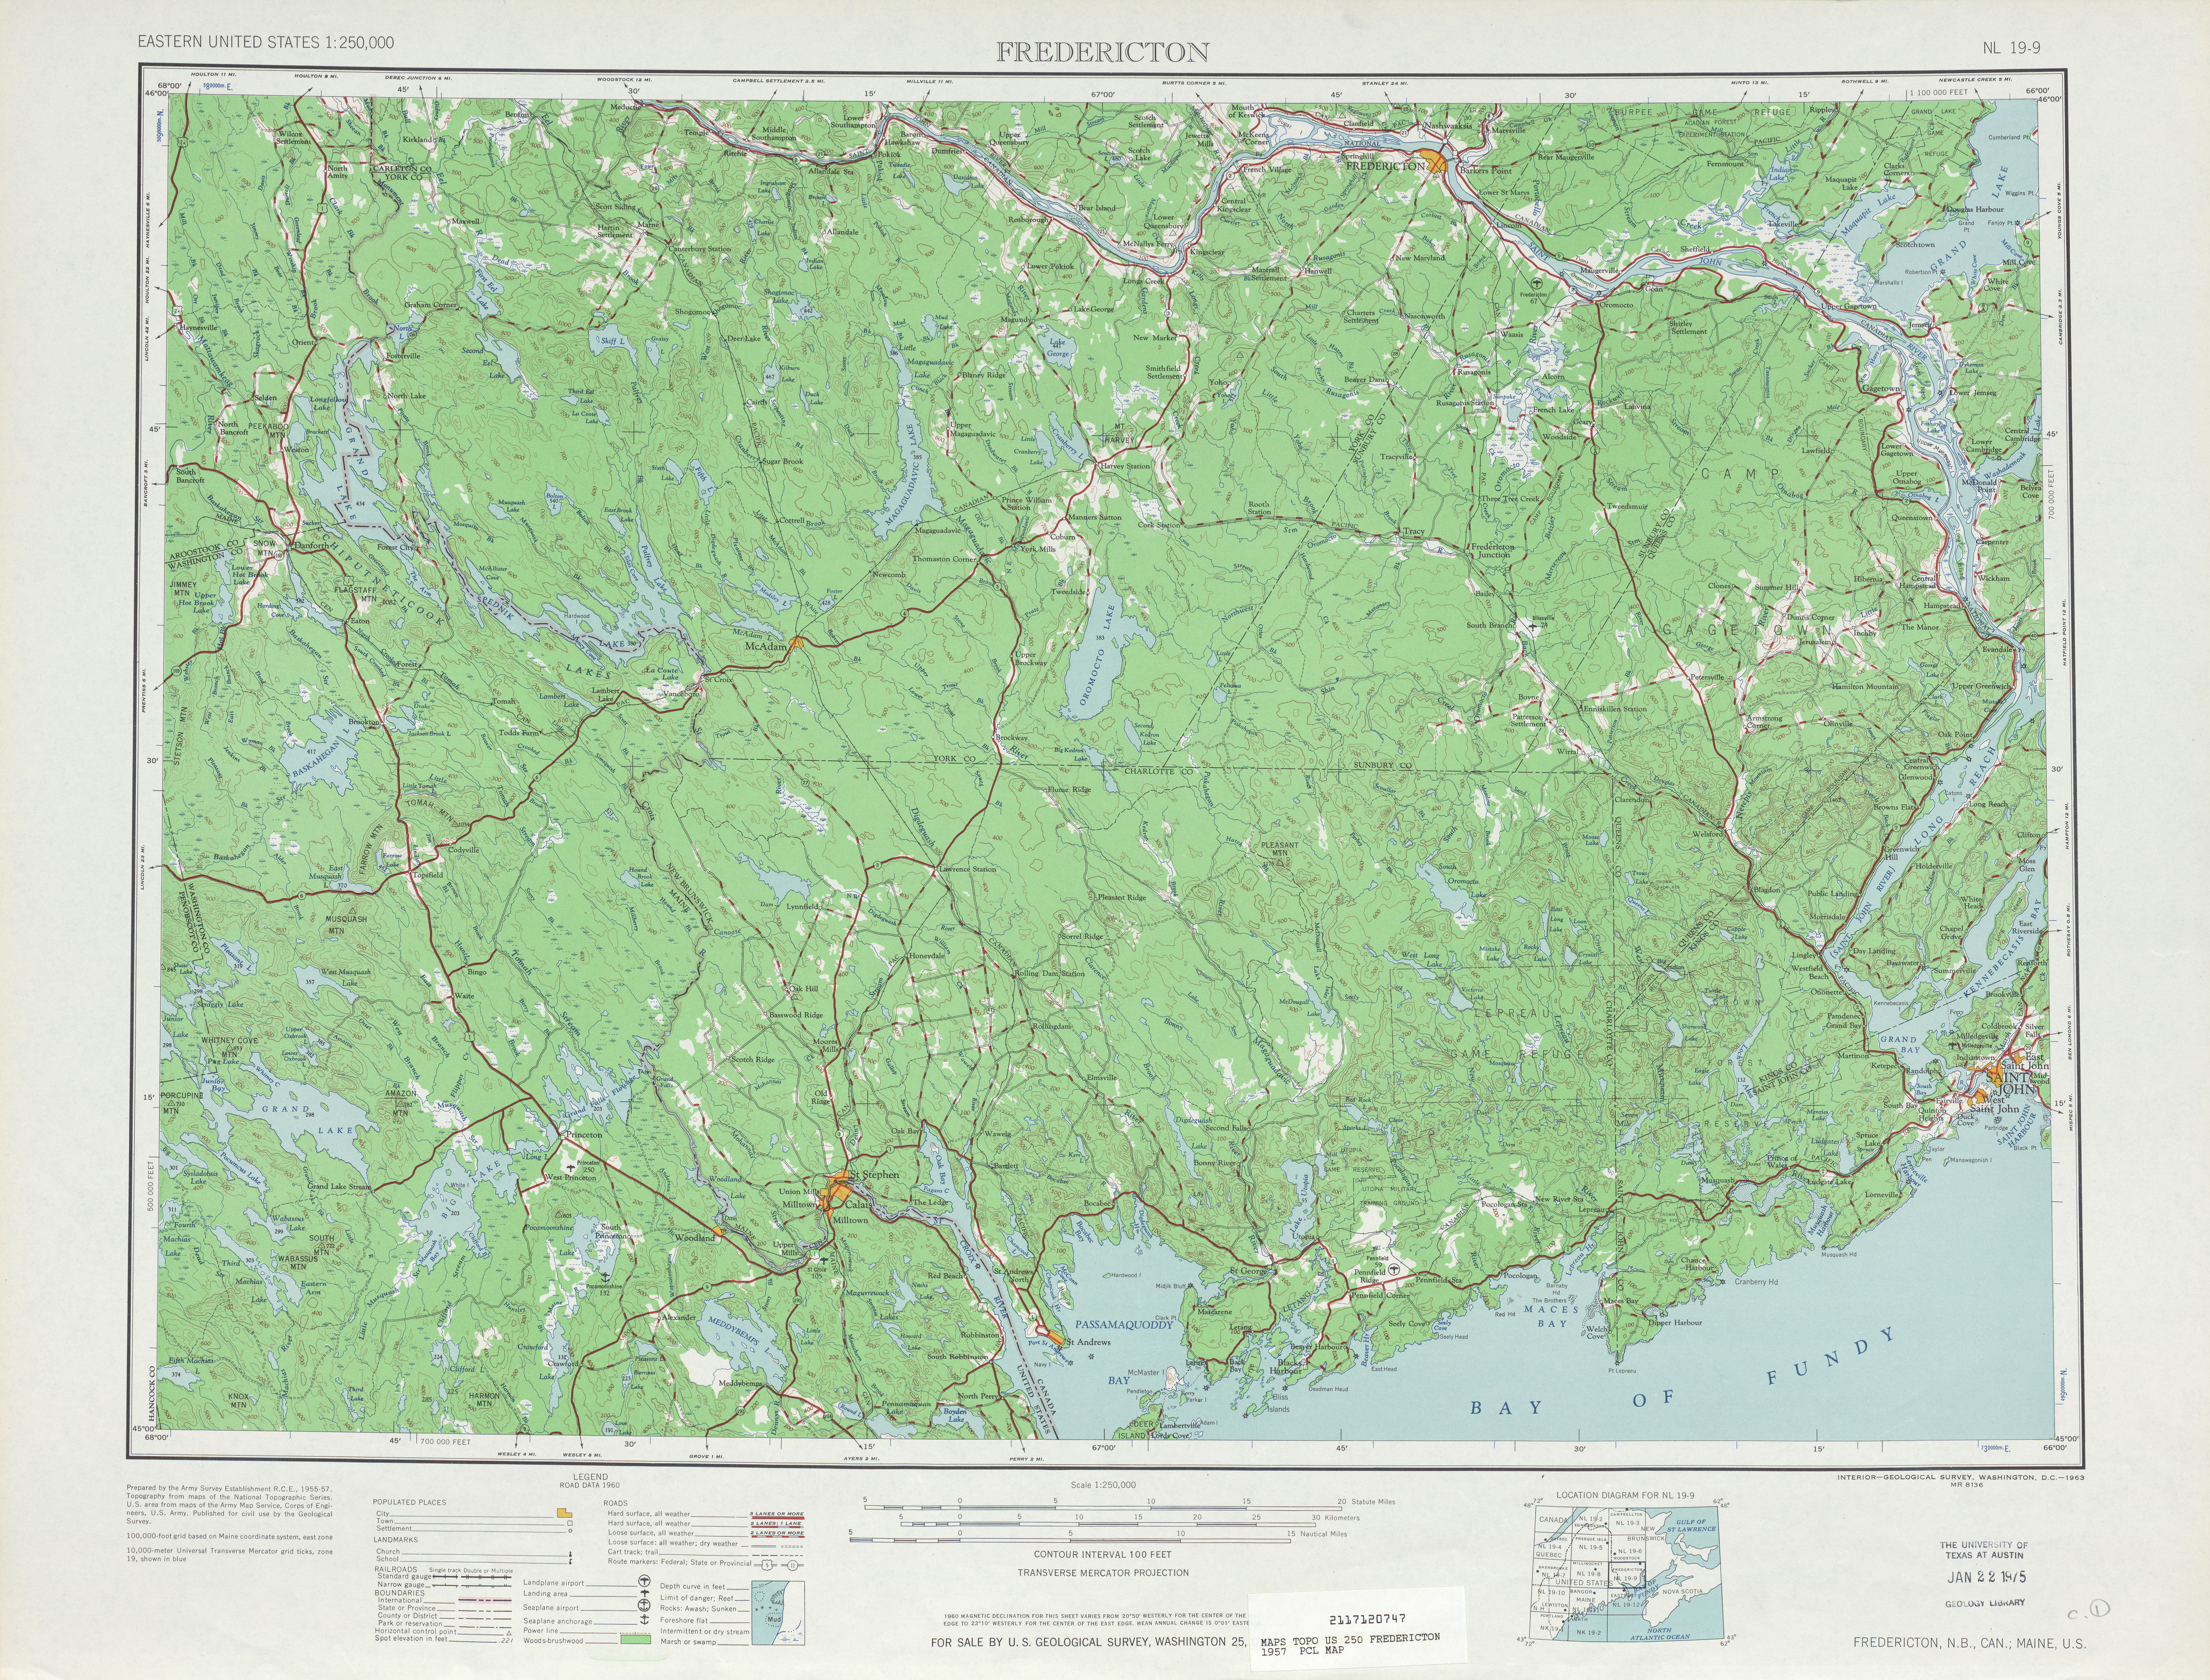 Fredericton Topographic Map Sheet, United States 1957